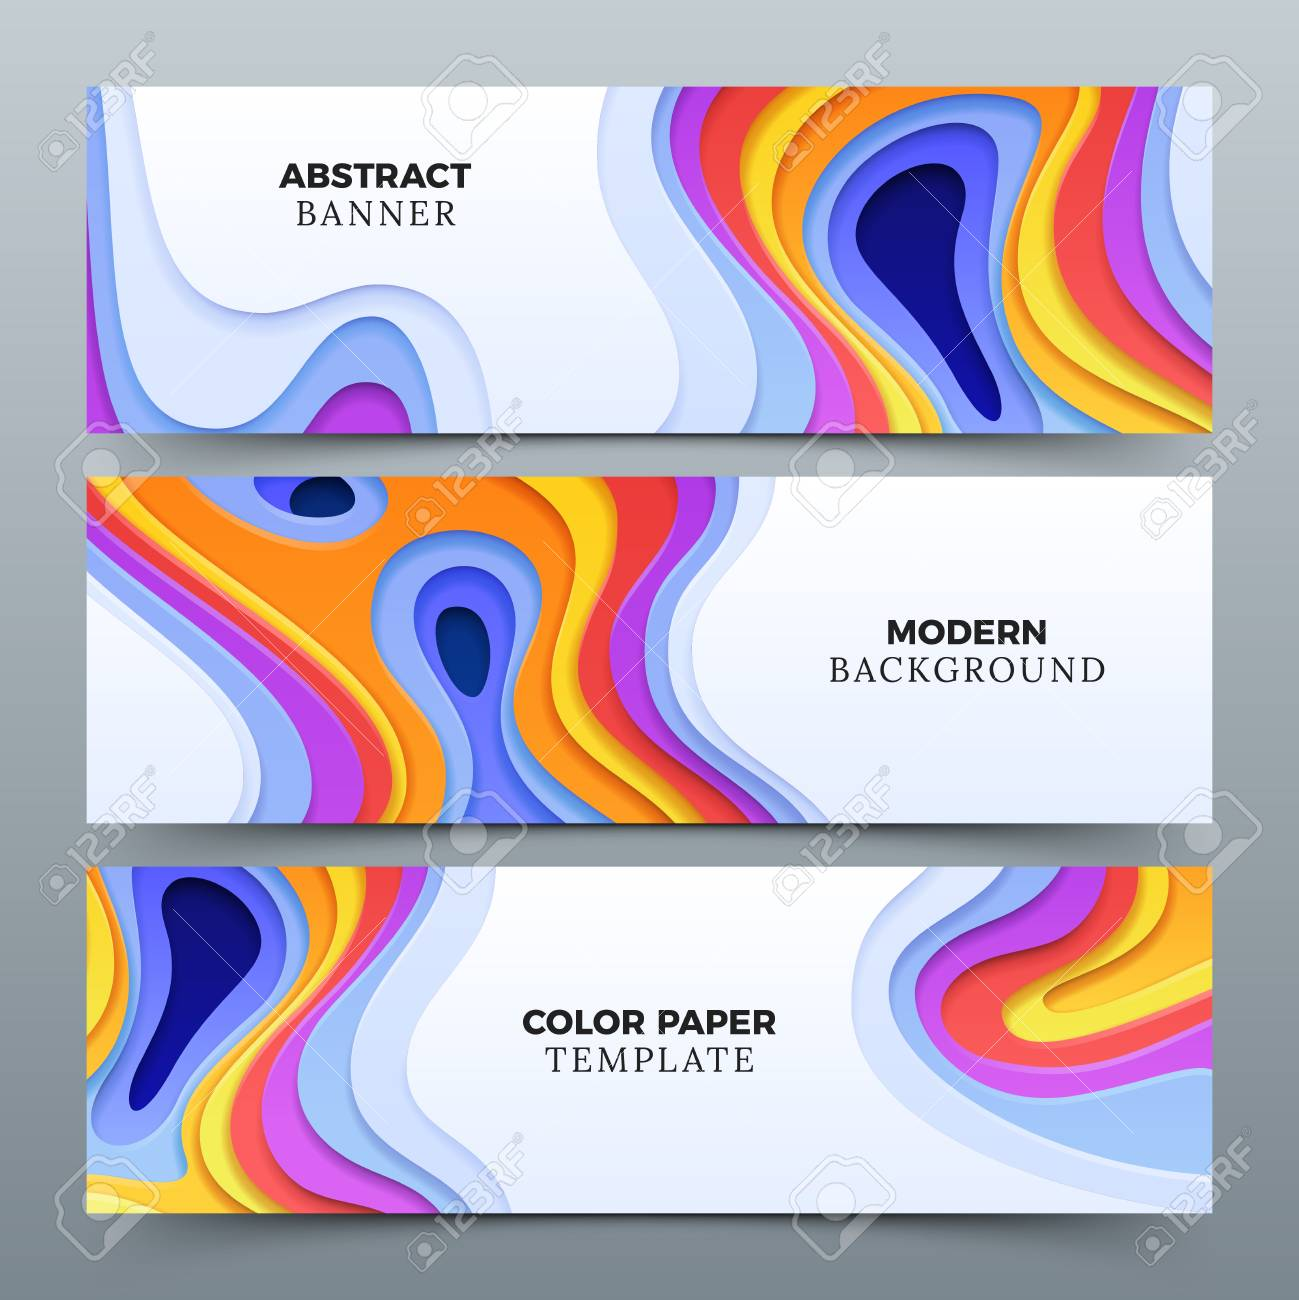 Fashion Abstract Advertising Vector Banners With 3d Paper Cutting Curved Shapes Stock